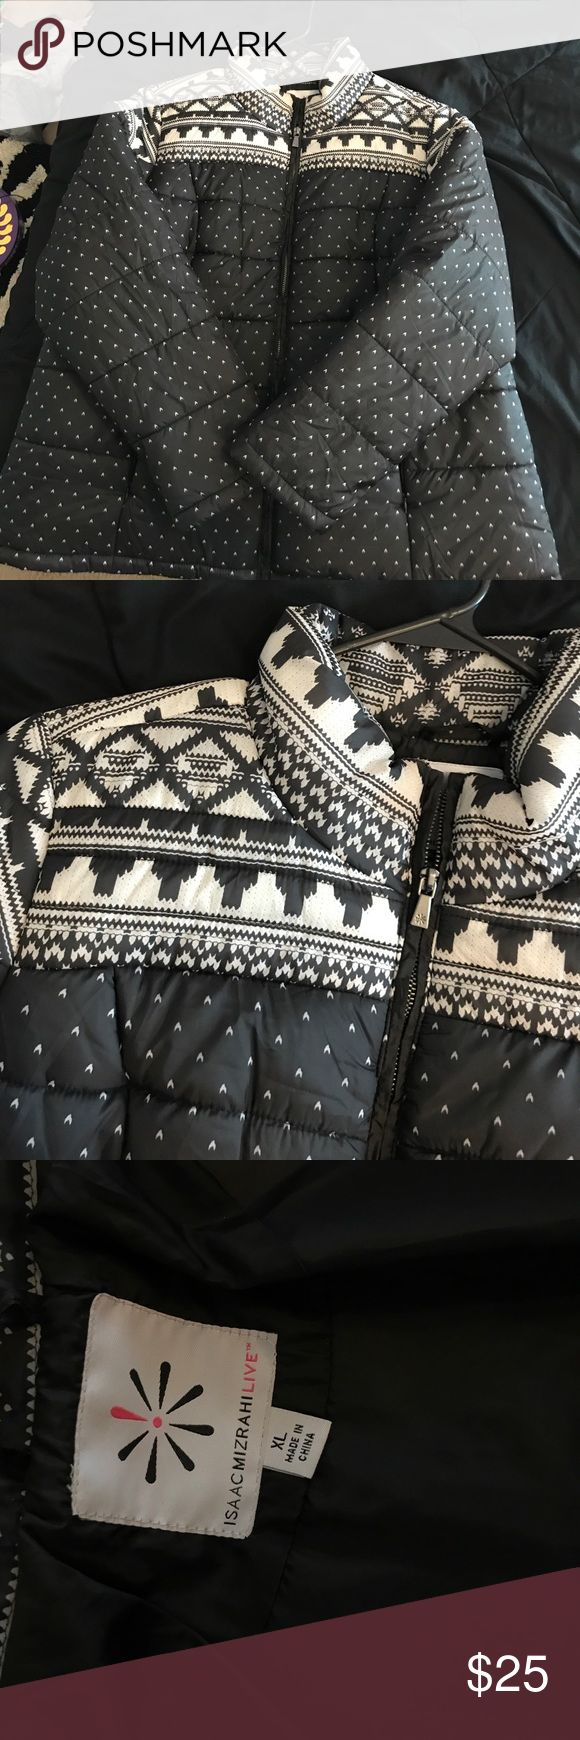 Black and White Snow Coat Black and white snow coat - no hood. pockets have zippers and are furry. Never worn. Isaac Mizrahi Jackets & Coats Puffers